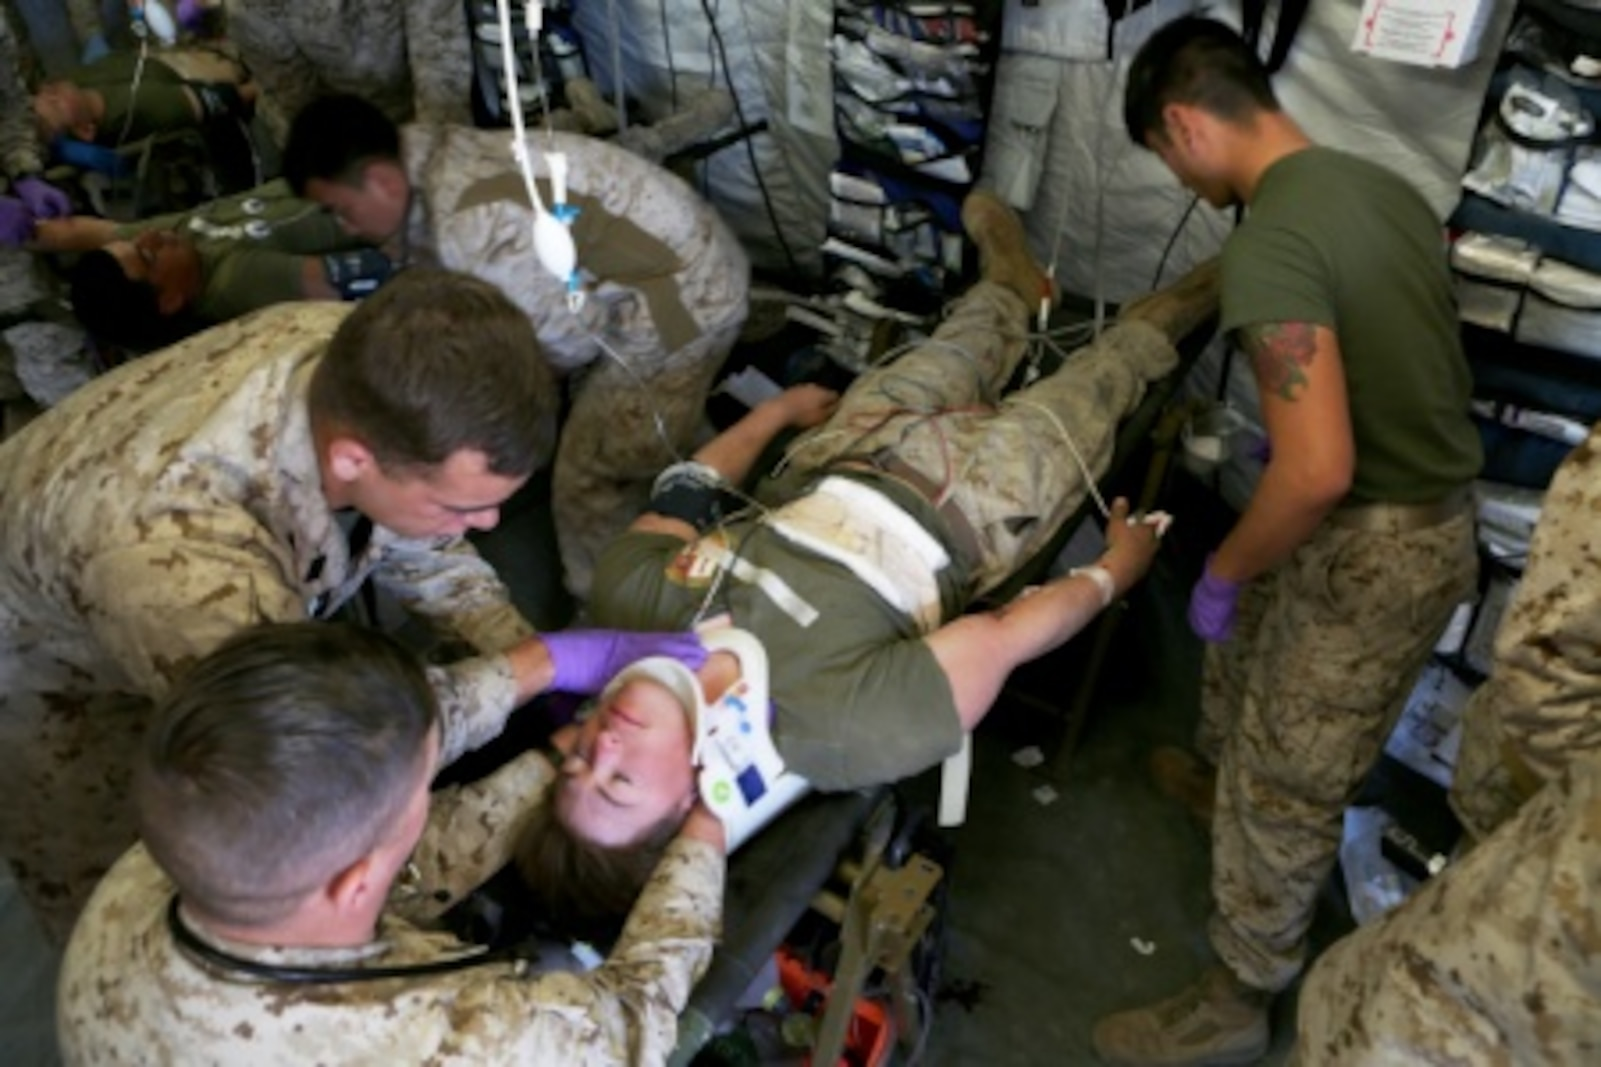 Sailors with Combat Logistics Battalion 5, 1st Marine Logistics Group, work to treat a patient during a mass casualty simulation drill during Integrated Training Exercise 2-16 aboard Marine Corps Air Ground Combat Center Twentynine Palms, Calif., Feb. 10, 2016. The drill began with taking hostile indirect-fire, resulting in multiple casualties with severe wounds. It challenged Marines and Sailors on their ability to react and work together to triage and treat patients accordingly.